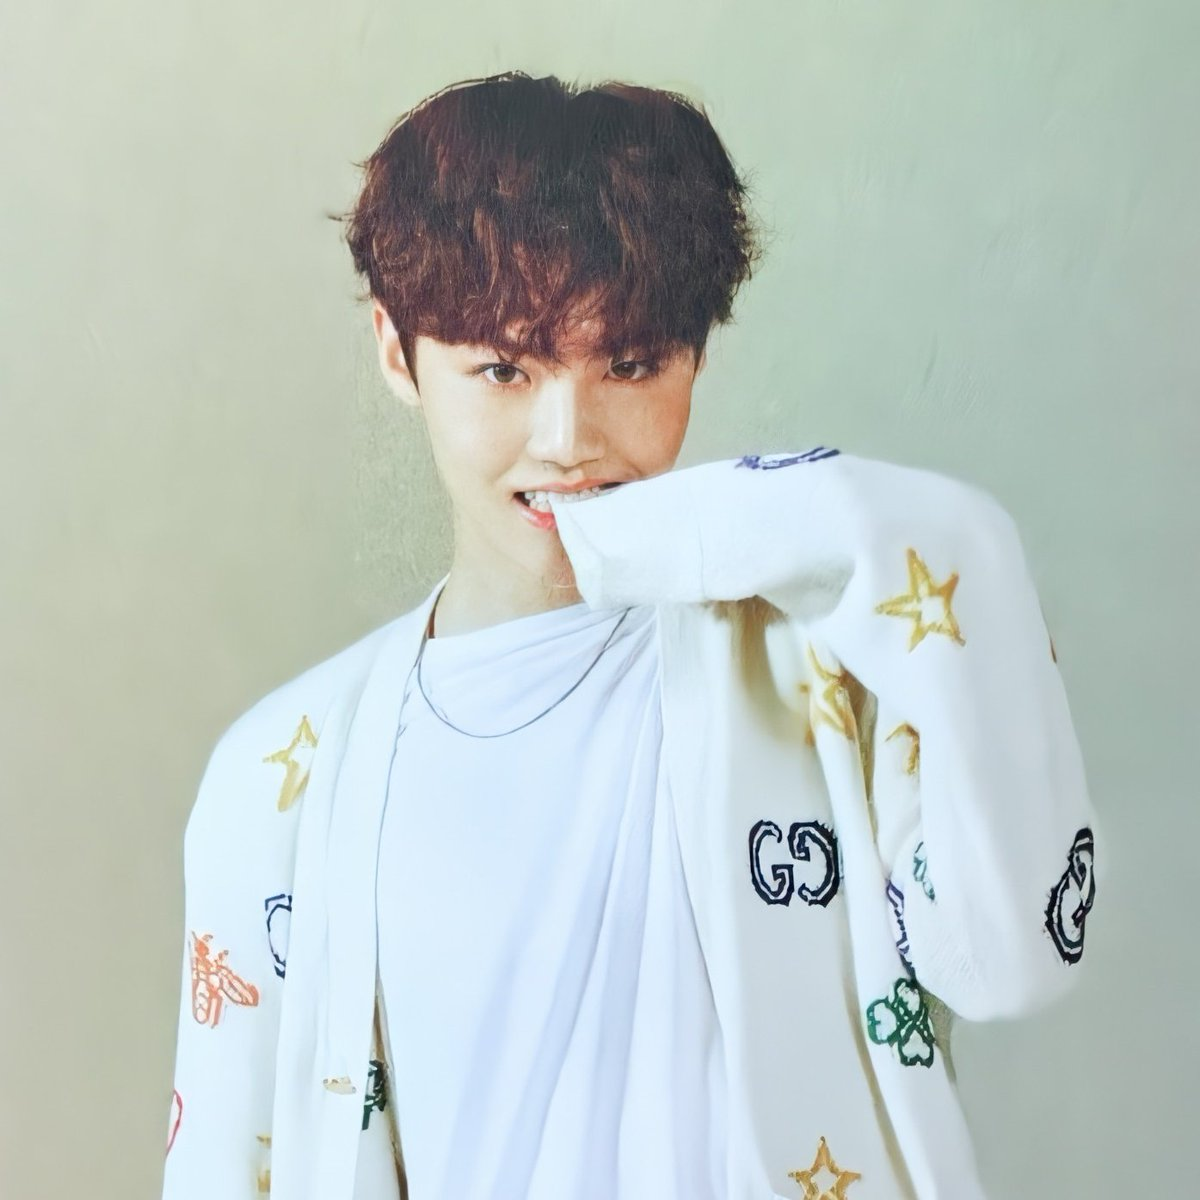 Thread By Mochidobby Reasons Why You Love Or You Will Love Kim Doyoung 도영 Of